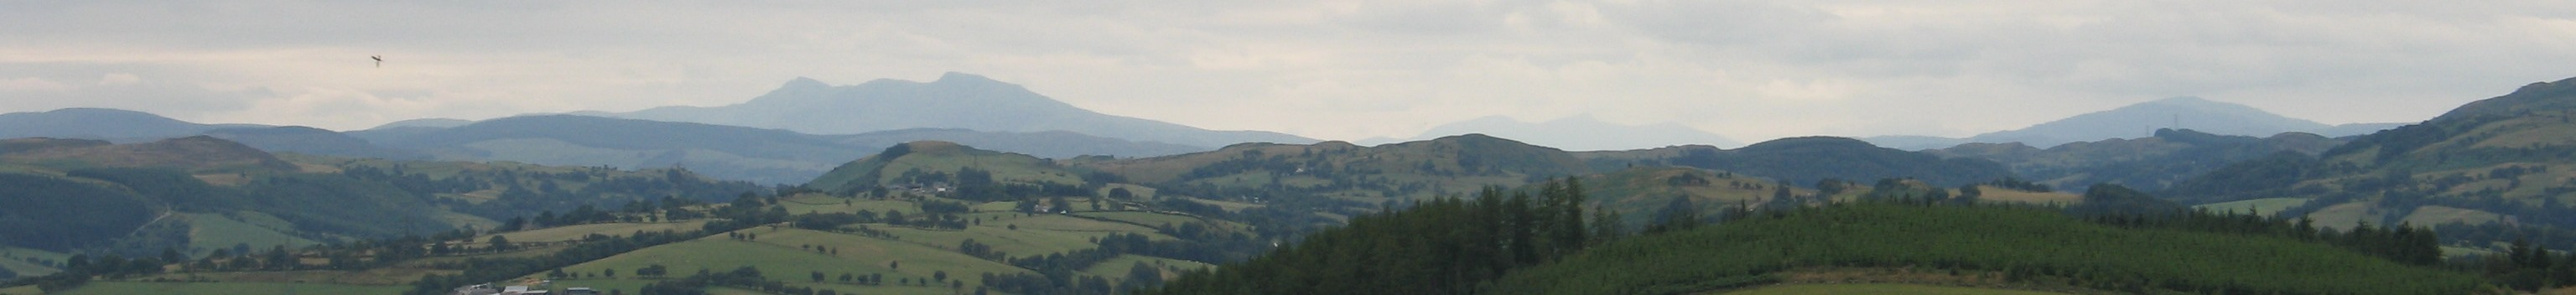 Looking down the Vale of Clwyd